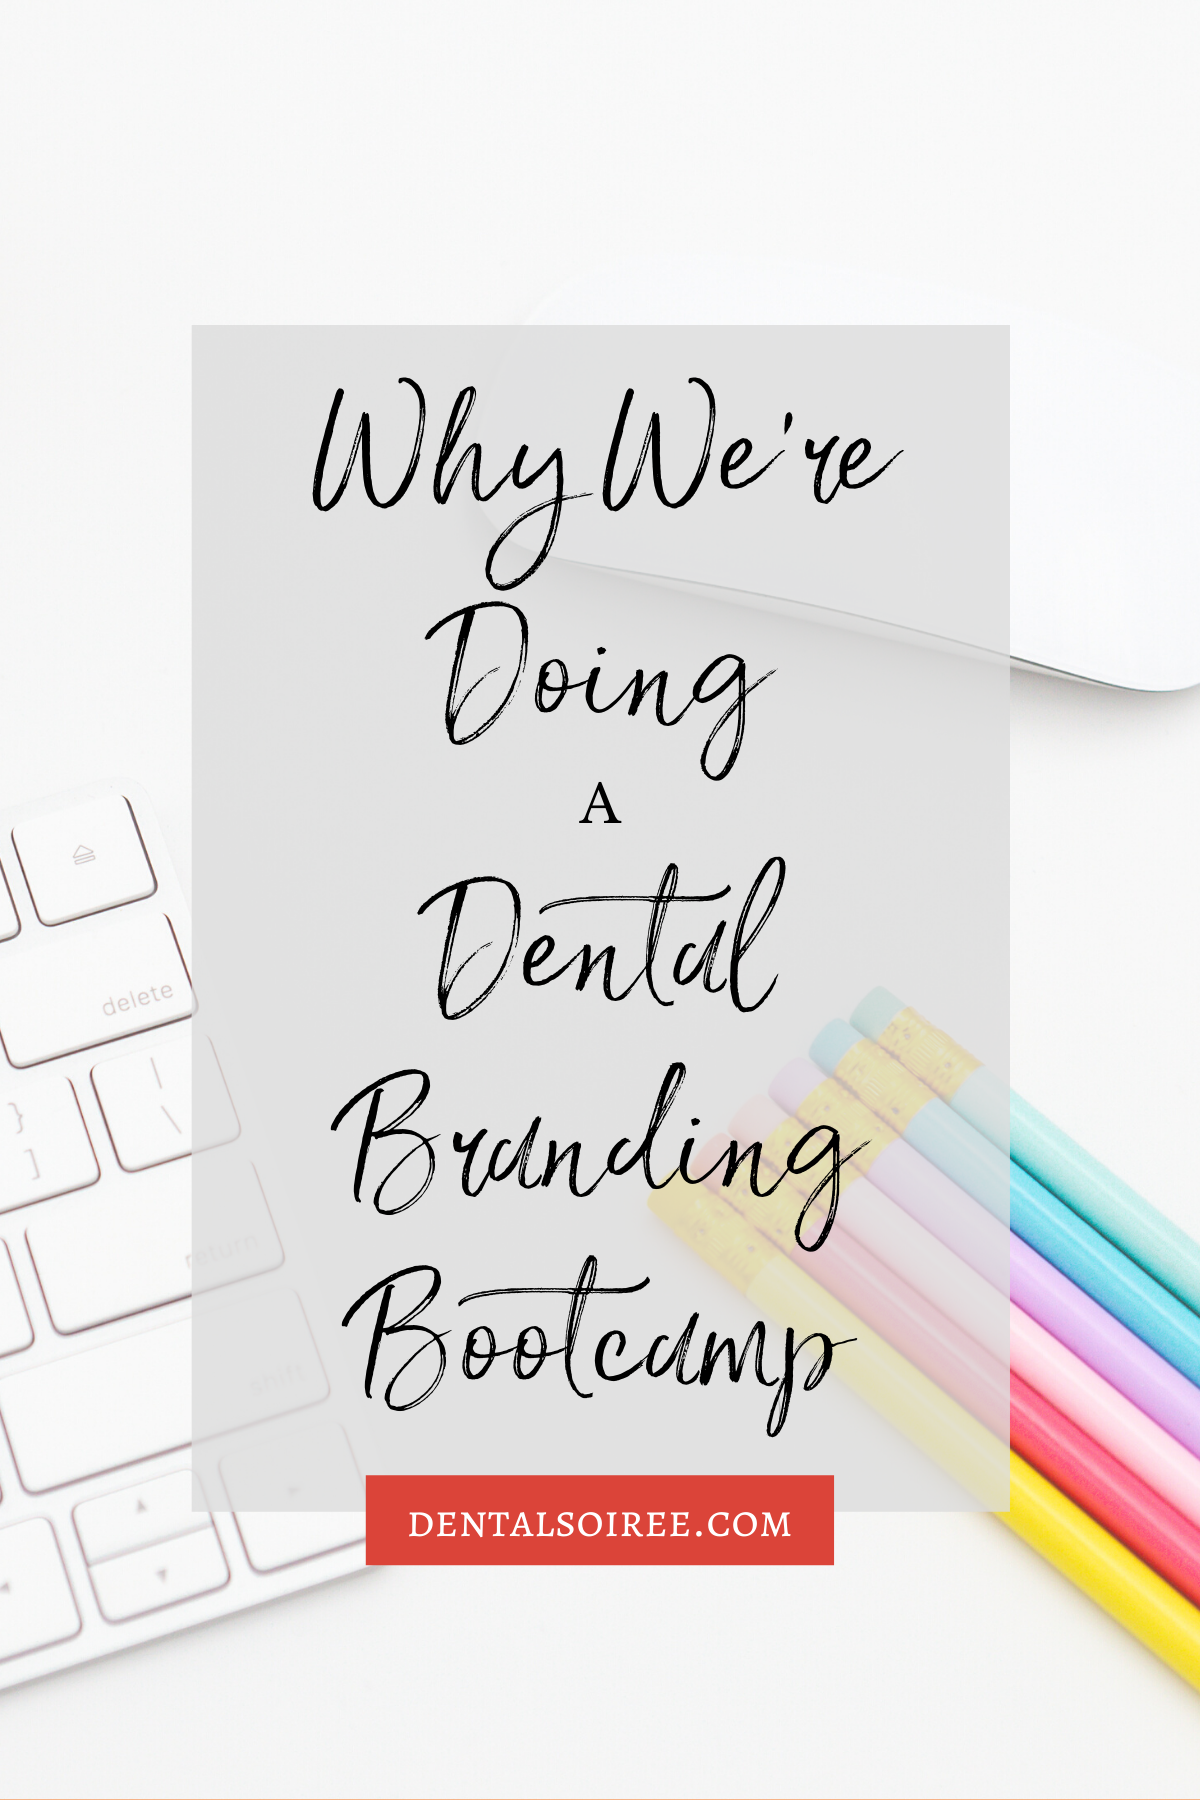 Why We're Doing a Dental Branding Bootcamp